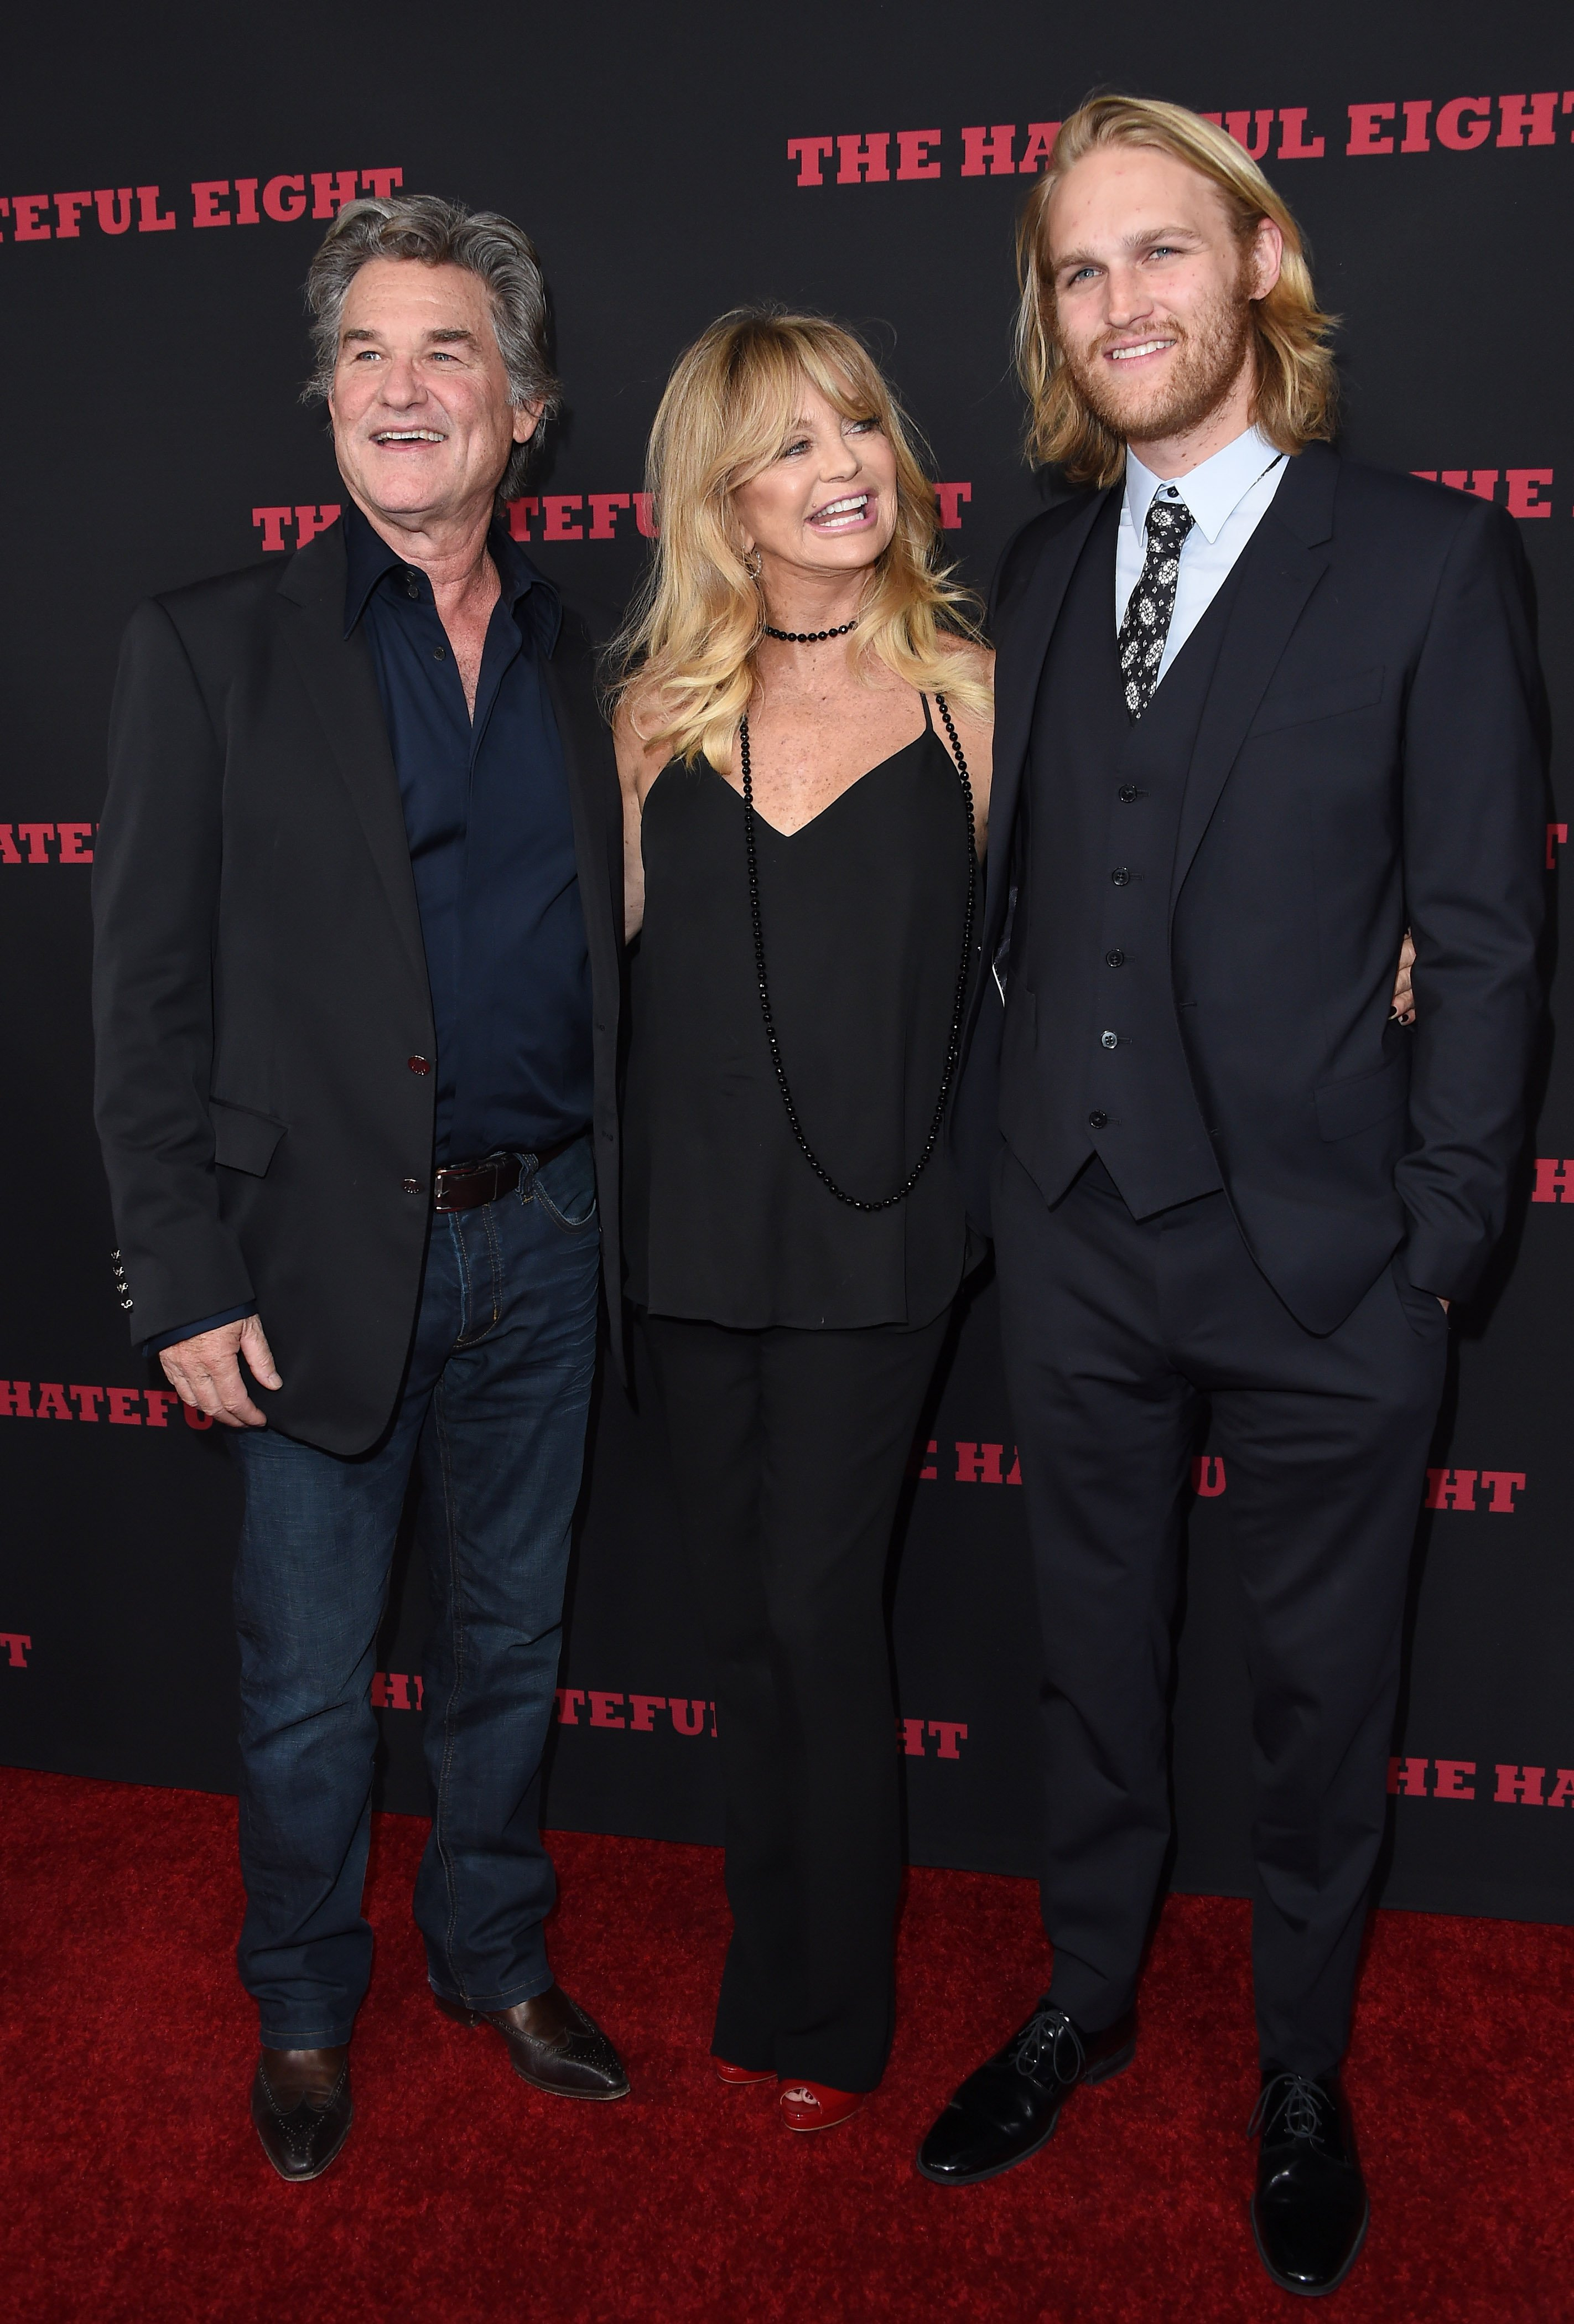 Kurt Russell, Goldie Hawn and Wyatt Russell arrive at the Los Angeles Premiere of 'The Hateful Eight' at ArcLight Cinemas Cinerama Dome on December 7, 2015. | Source: Getty Images